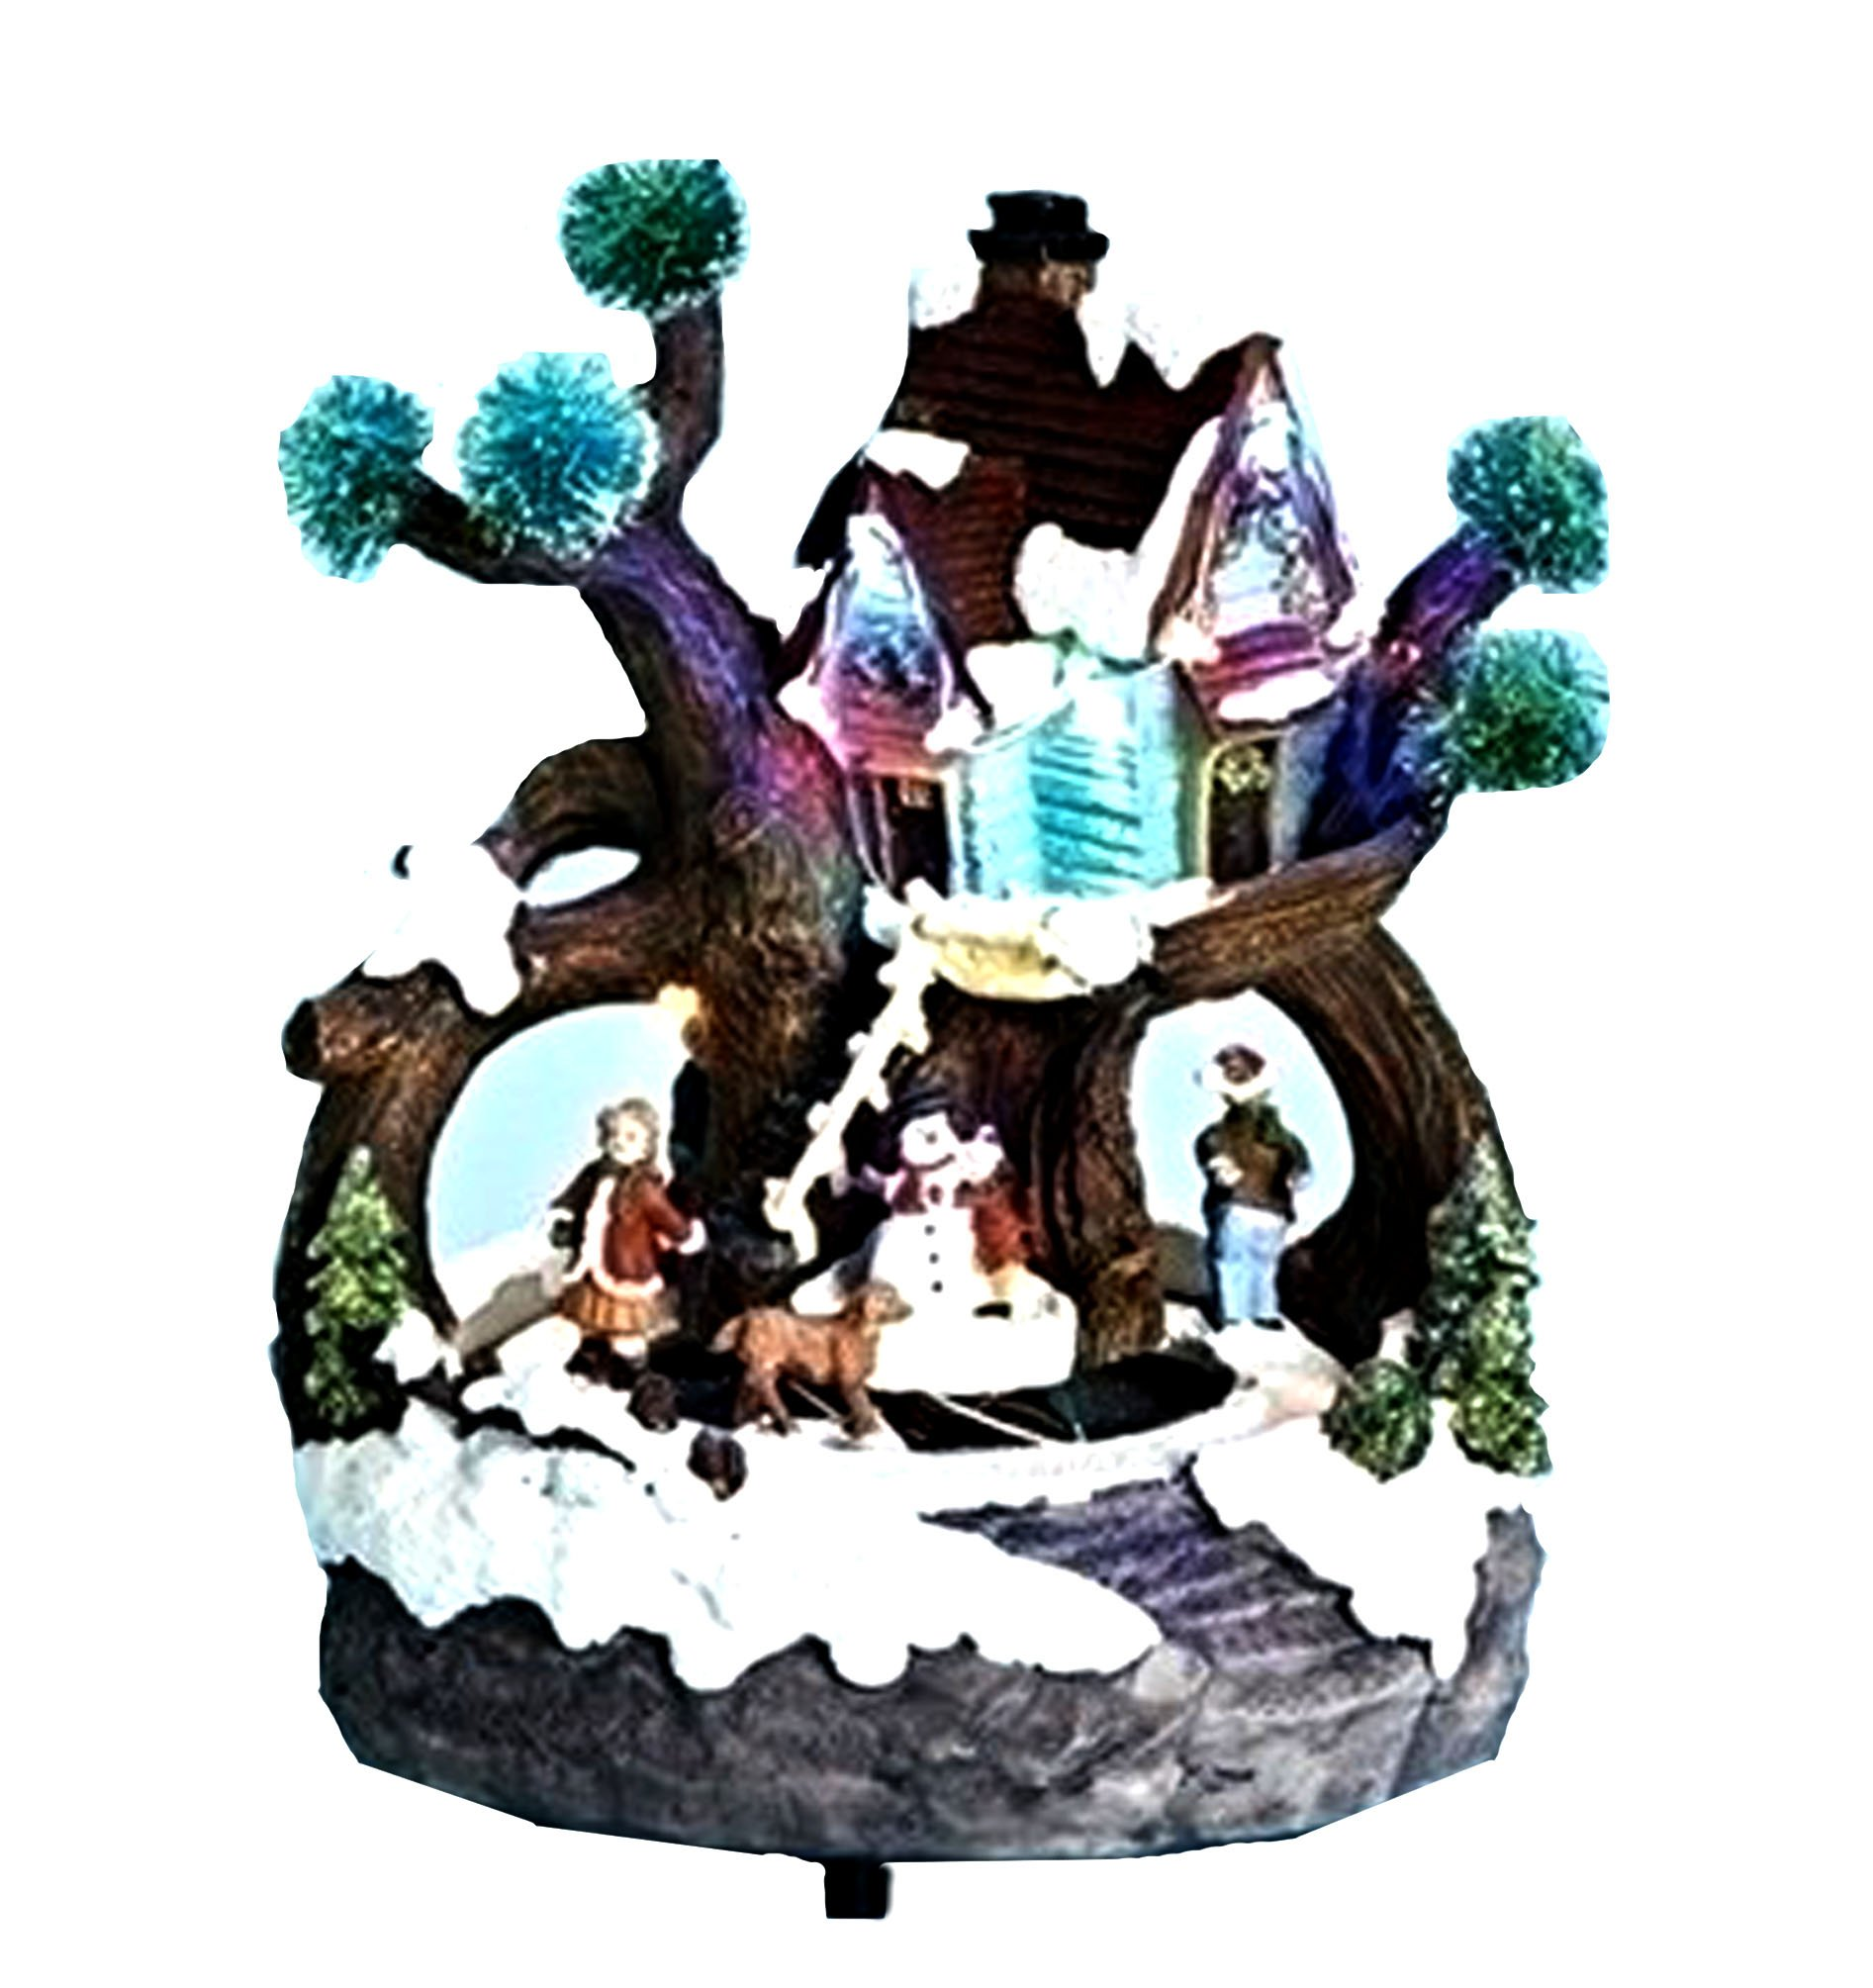 8'' LED Tree House With Snowman And Kids Battery Operated Without Batteries Plays Various Christmas Songs by Roman